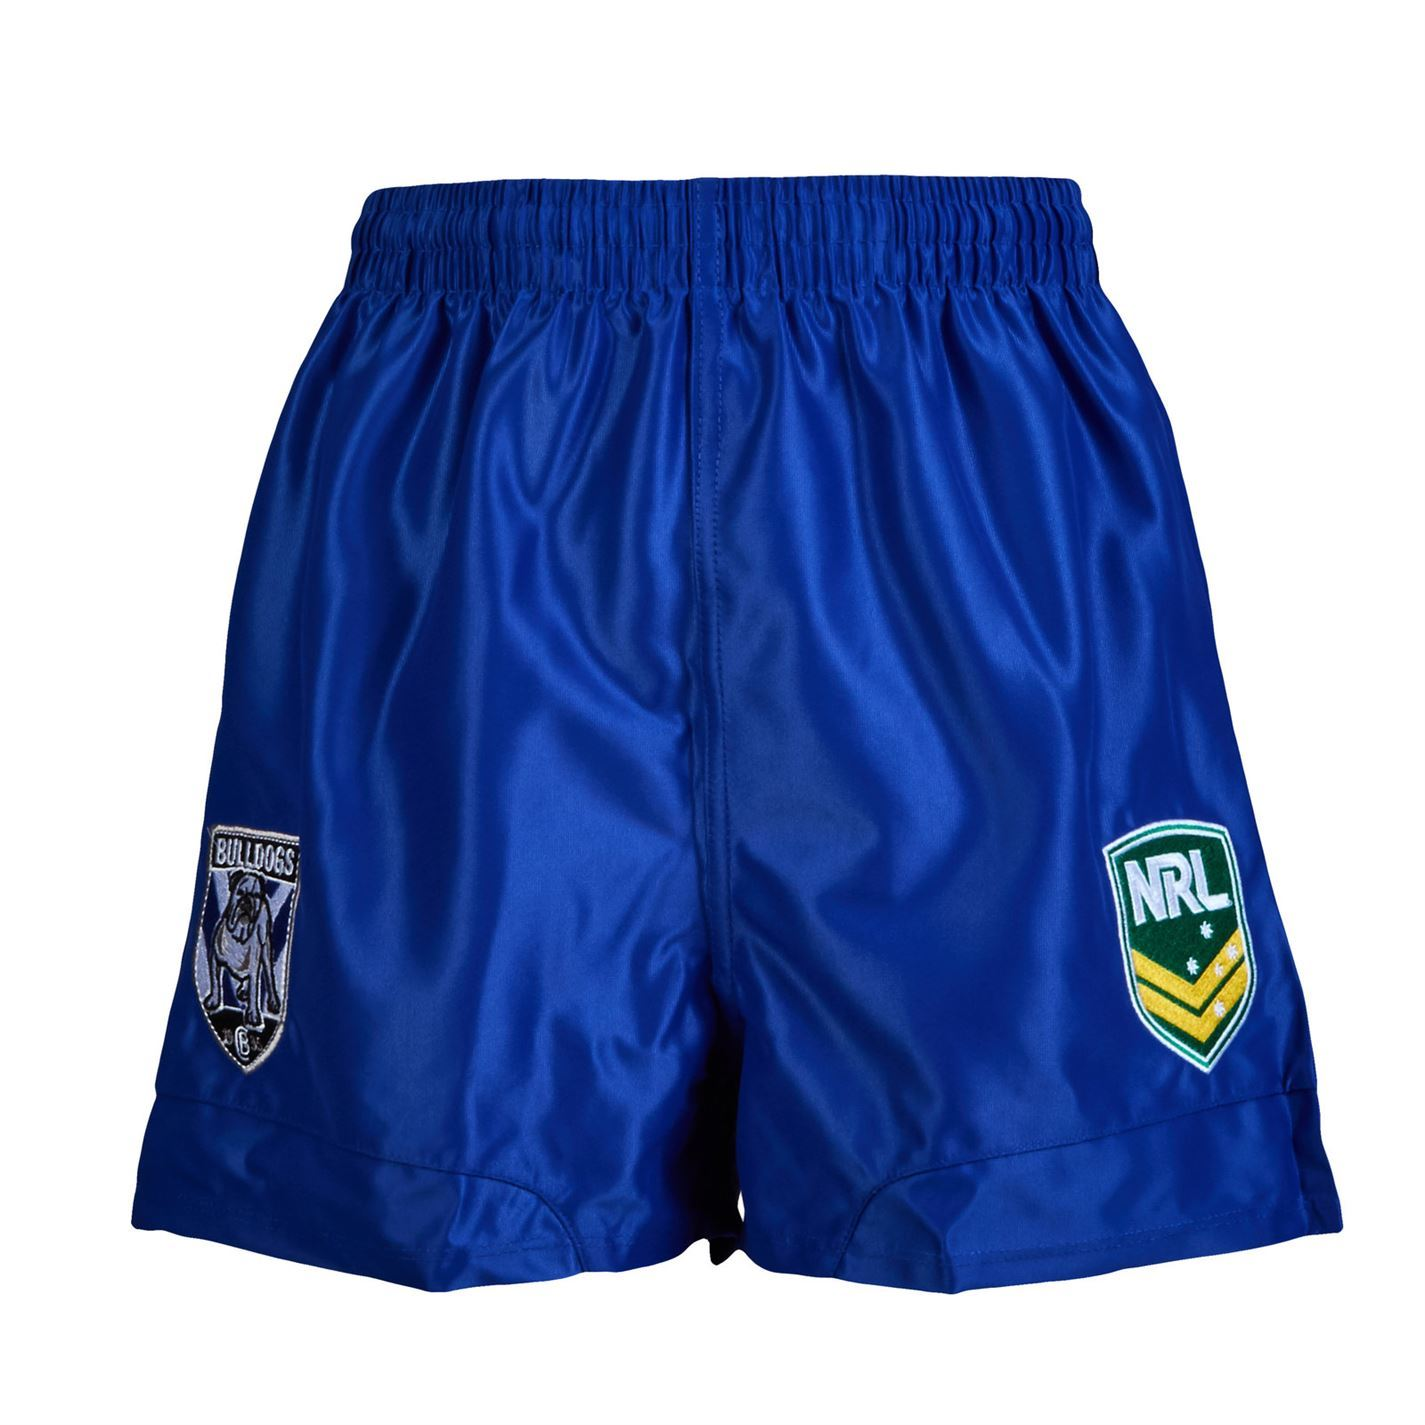 NRL-Supporter-Shorts-Juniors-Rugby-League-Storm-Bulldog-Sea-Eagles-Eels-Roosters thumbnail 3